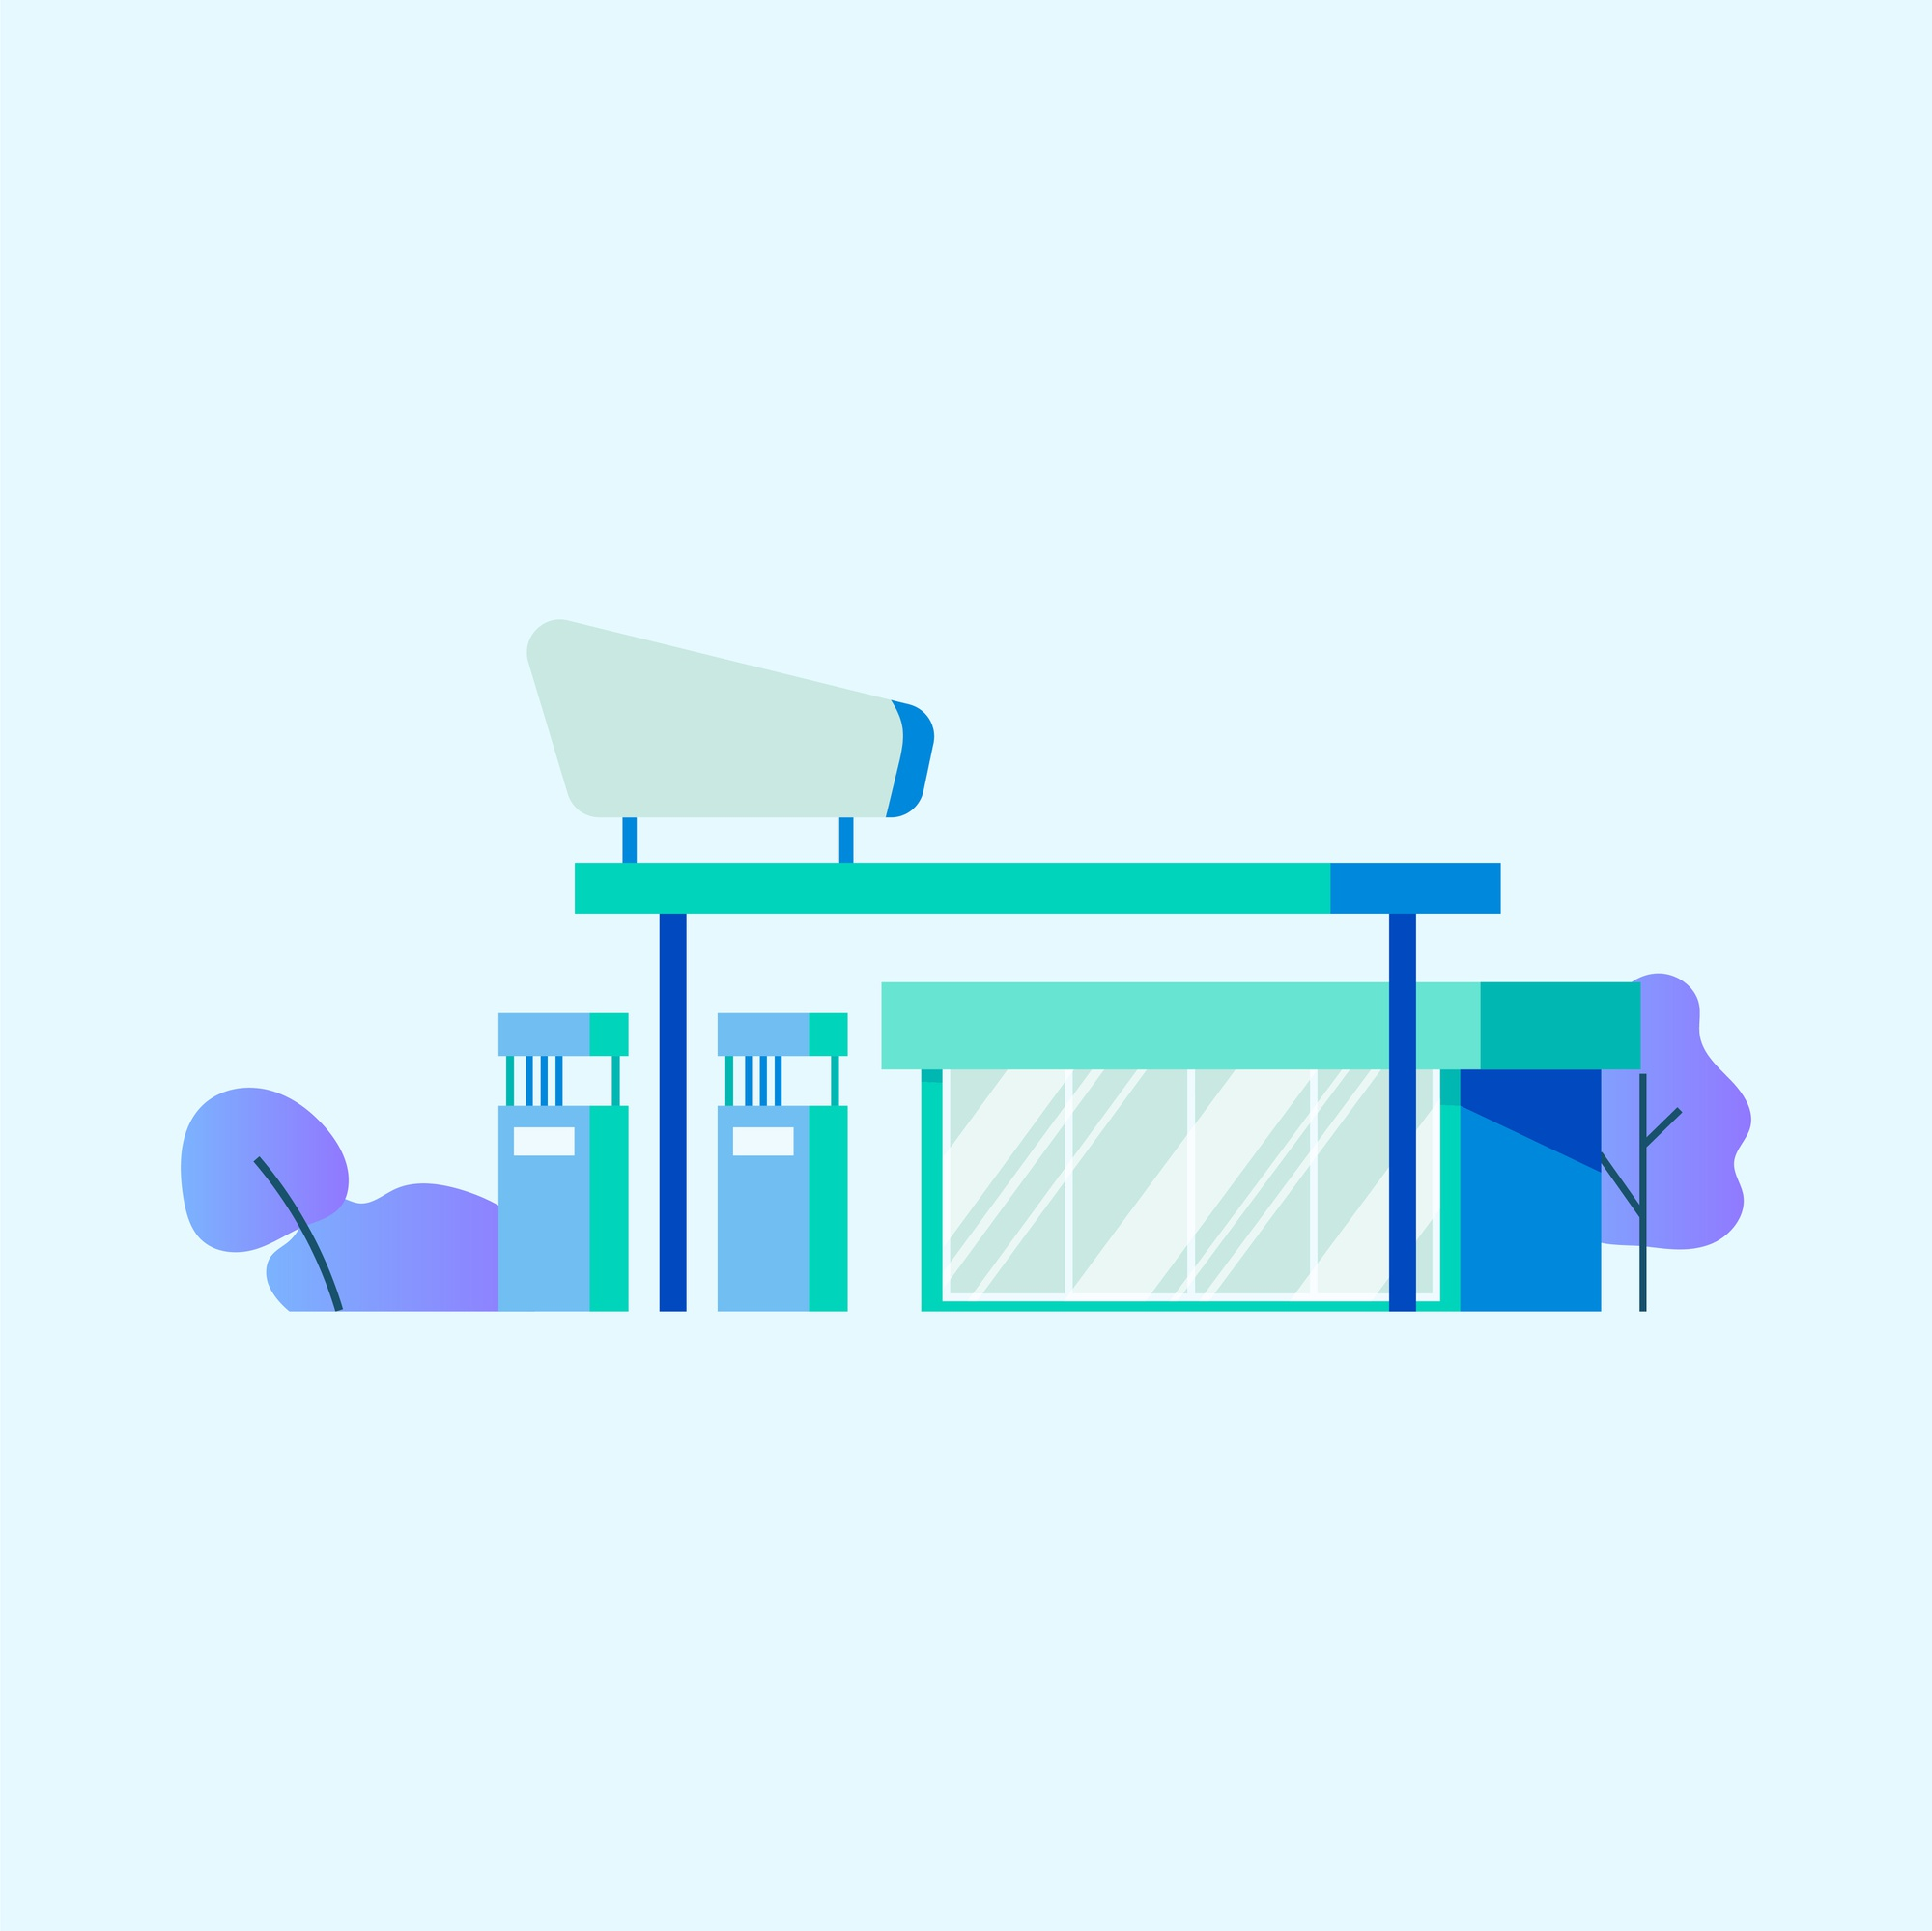 Gas or petrol station vector